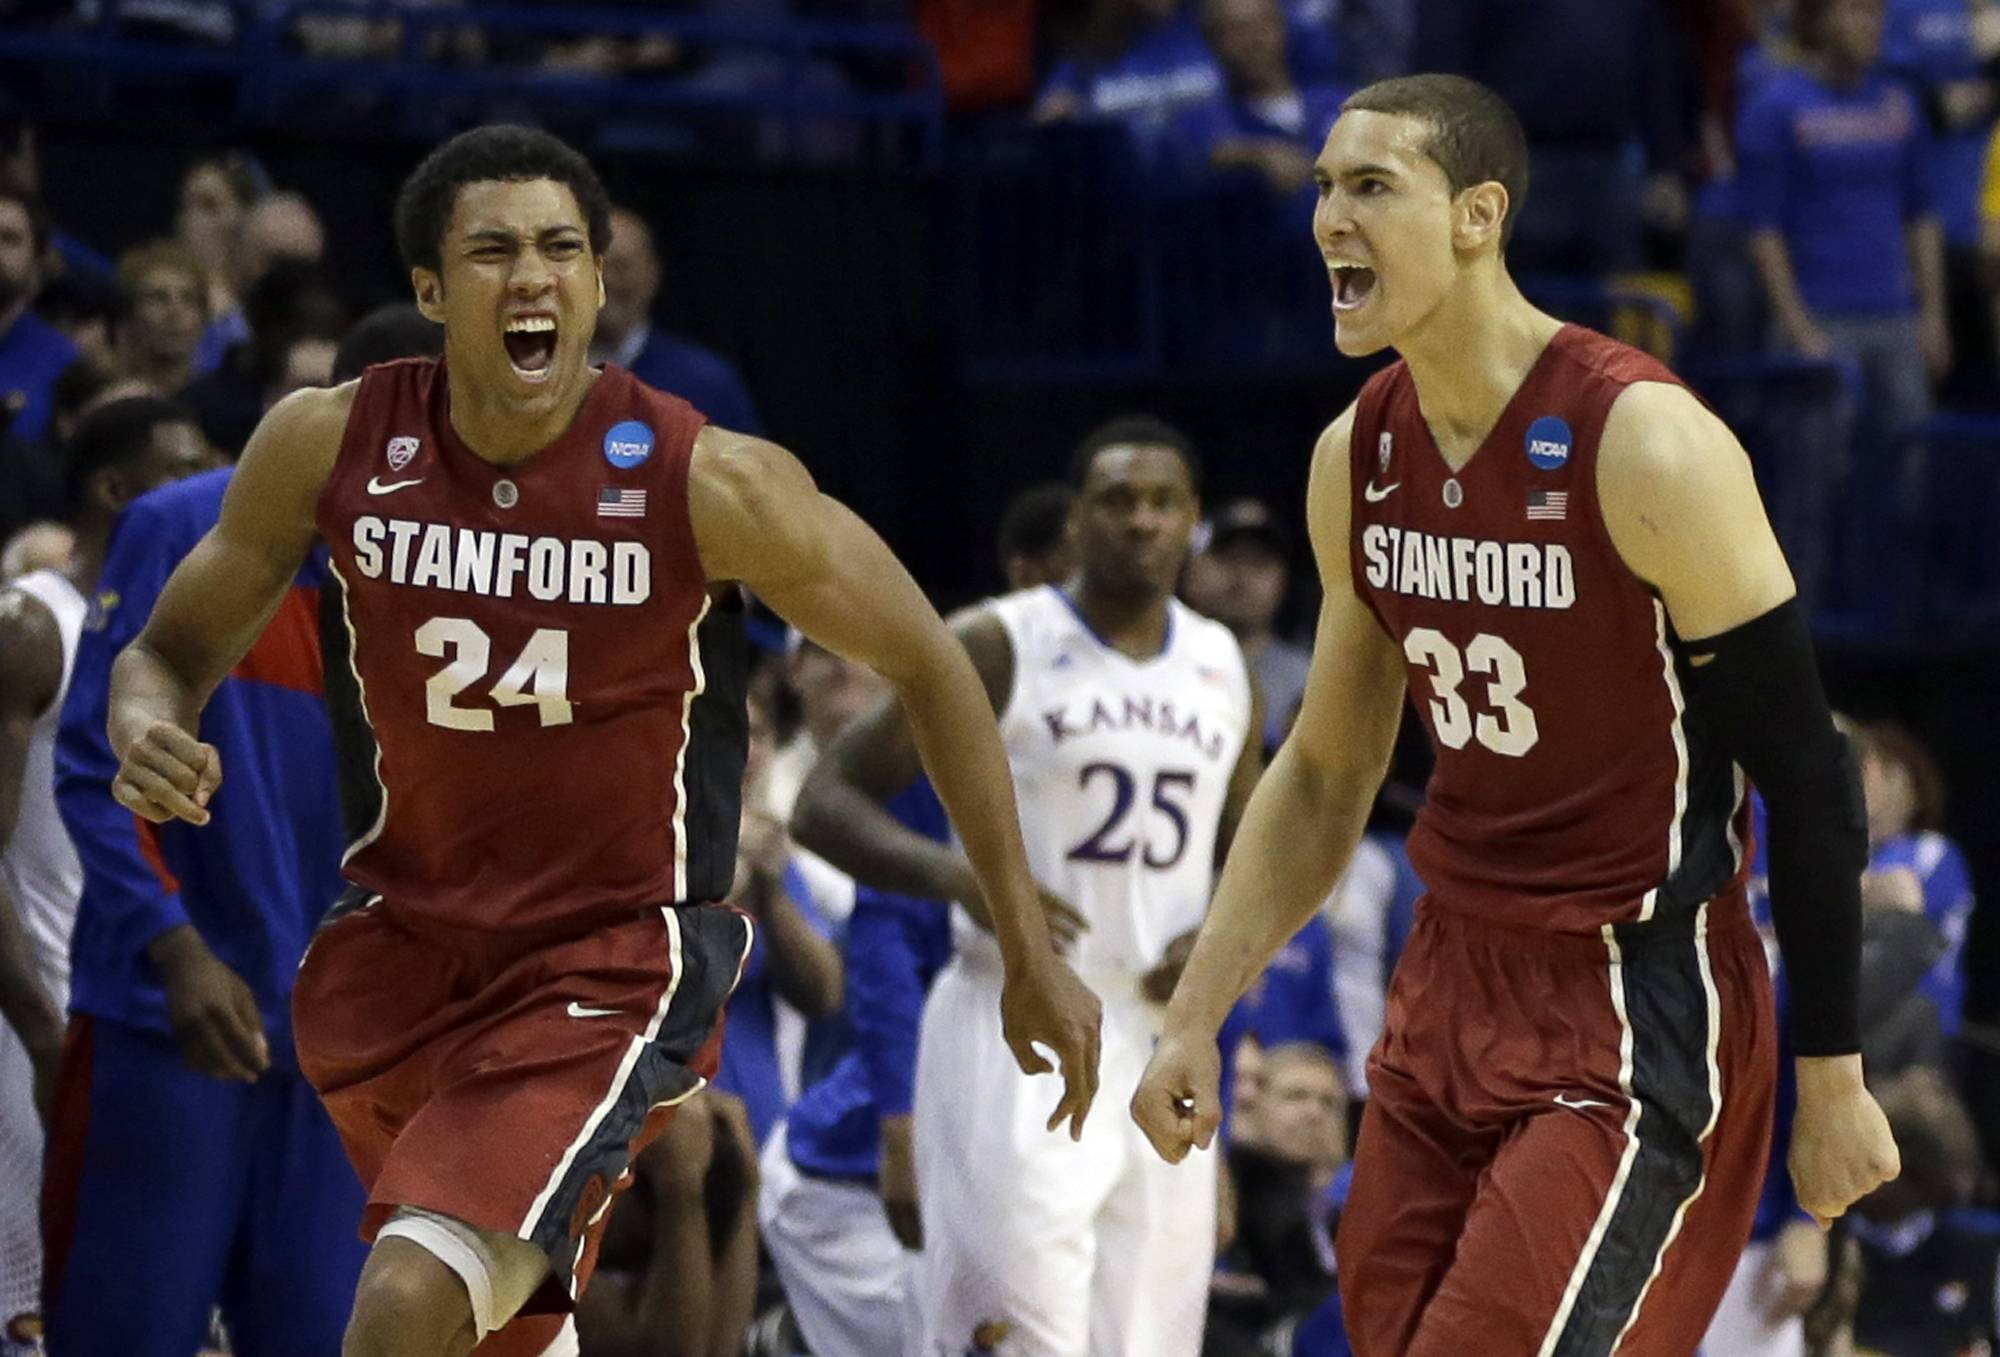 Stanford's Josh Huestis, left, and Dwight Powell, right, celebrate as Kansas' Tarik Black (25) watches in the background after in a third-round game of the NCAA college basketball tournament Sunday, March 23, 2014, in St. Louis. Stanford won 60-57.